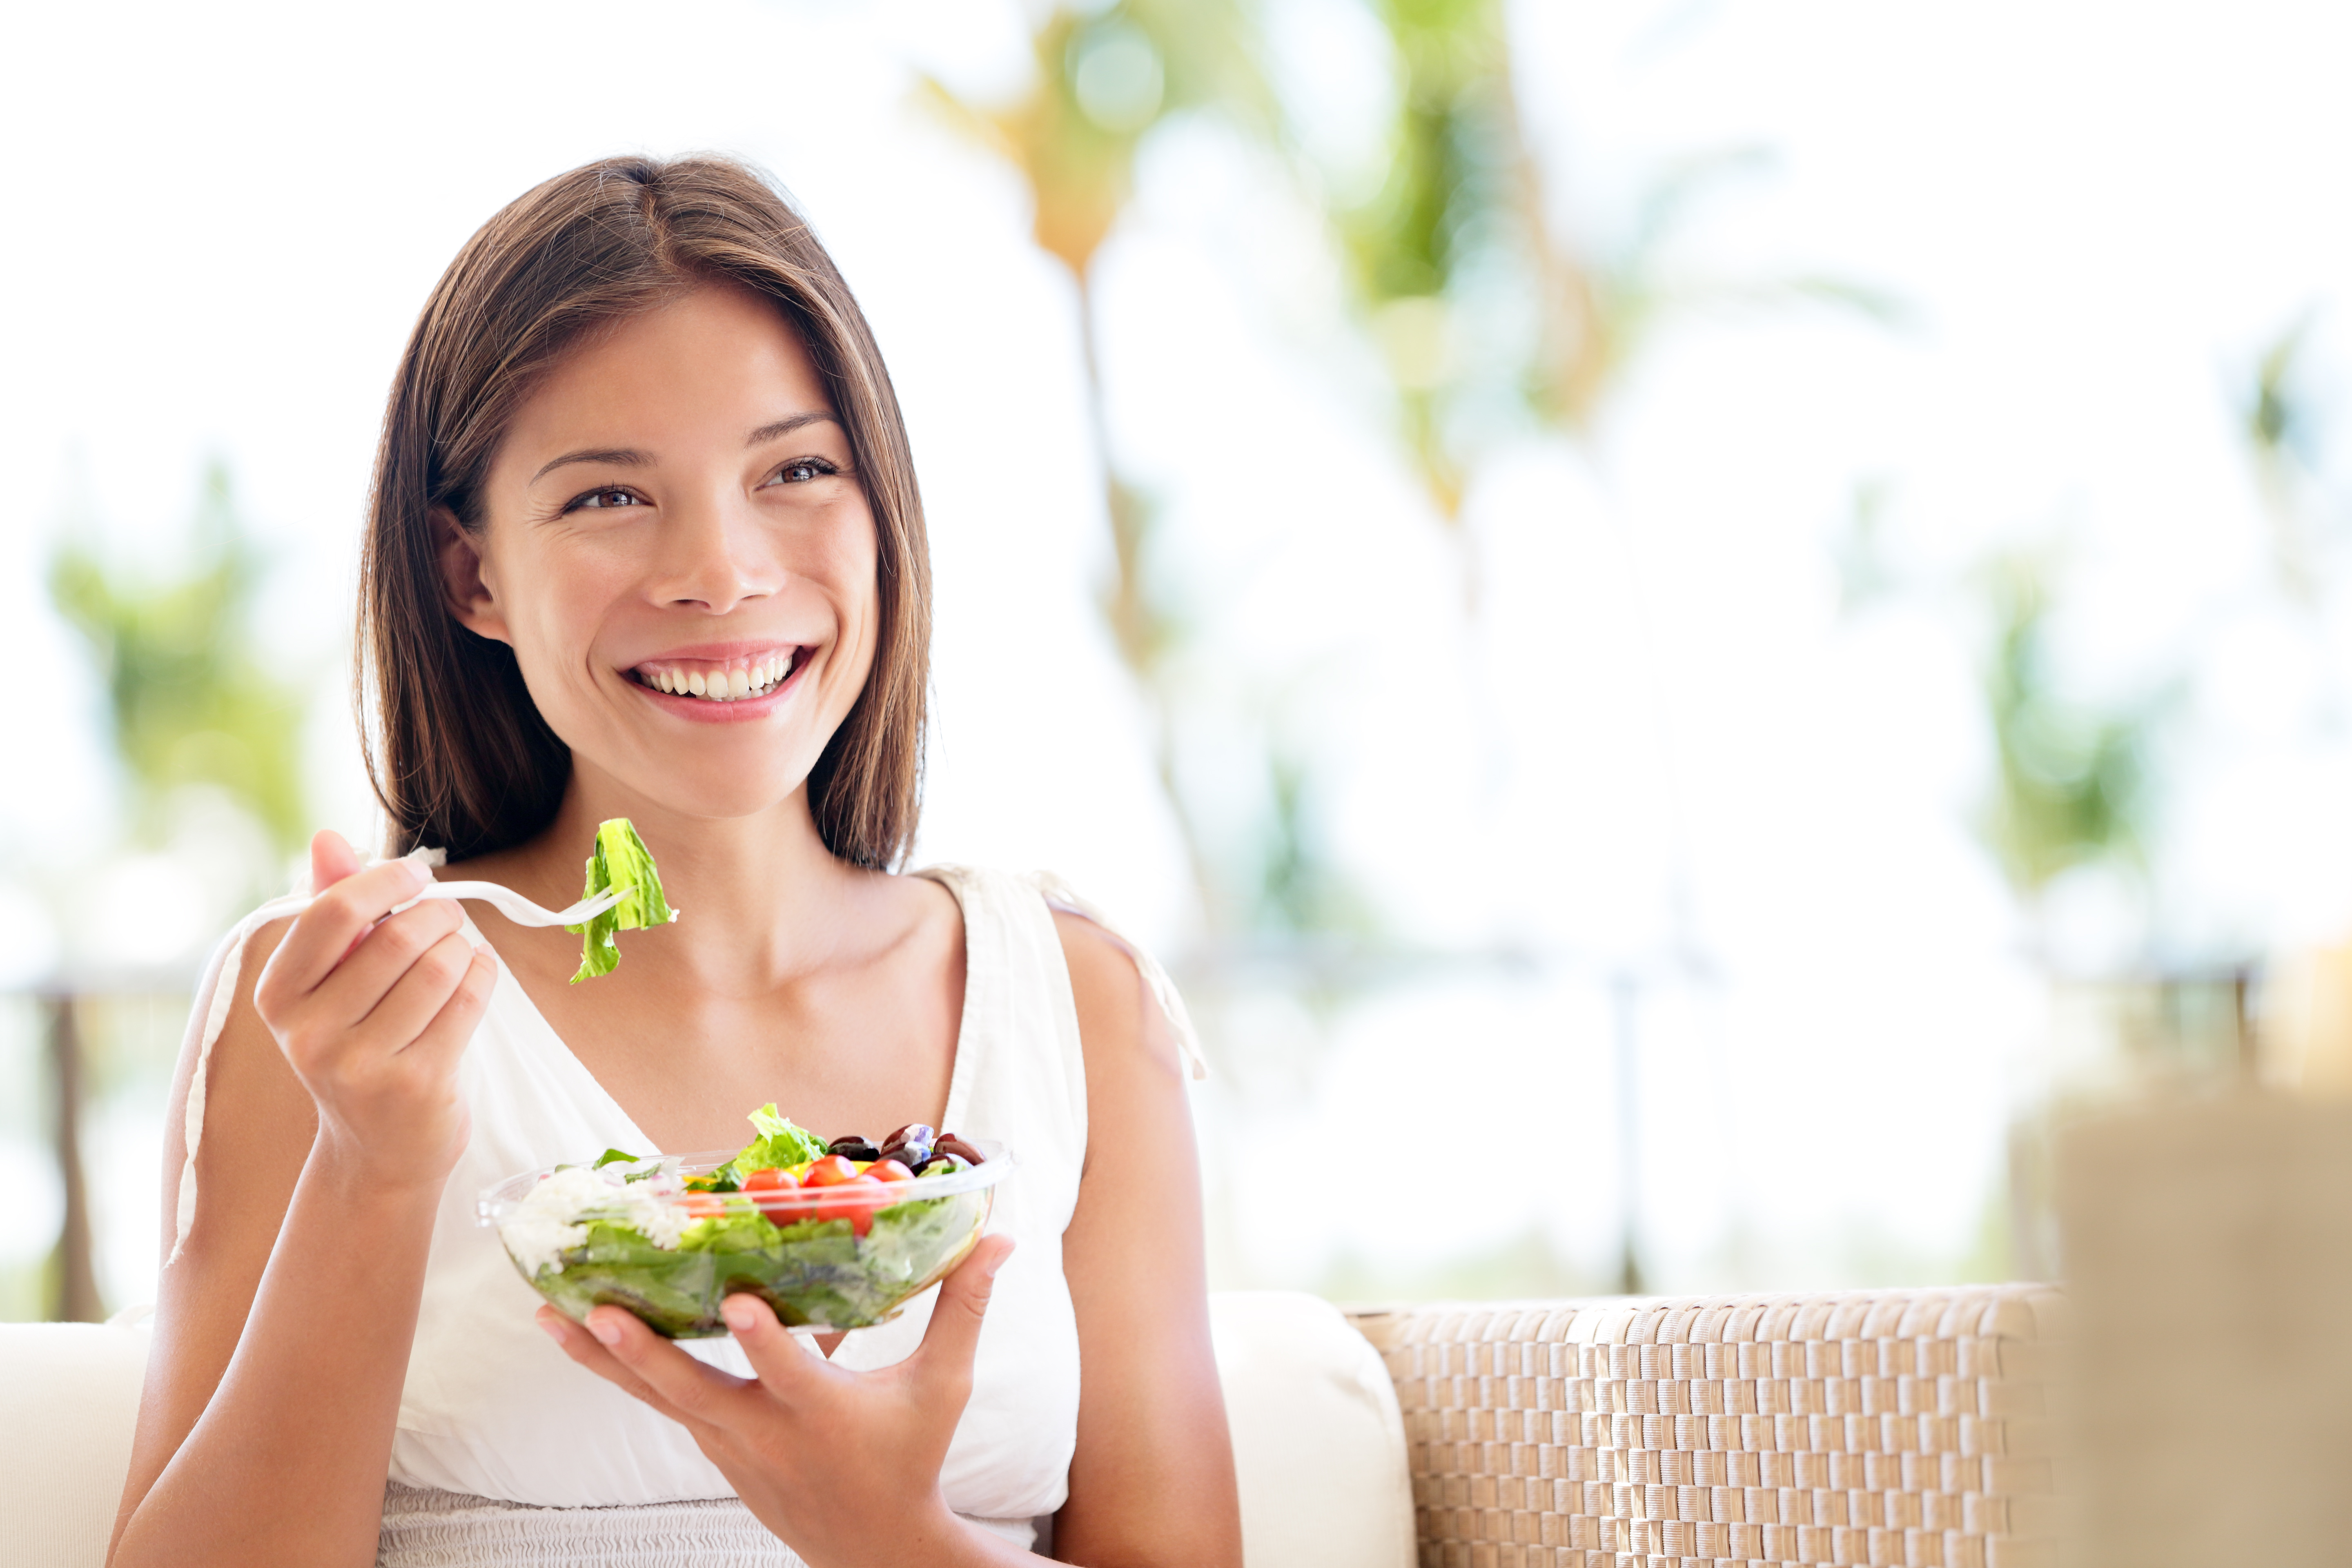 9 Tips To Help Get Your Eating Under Control